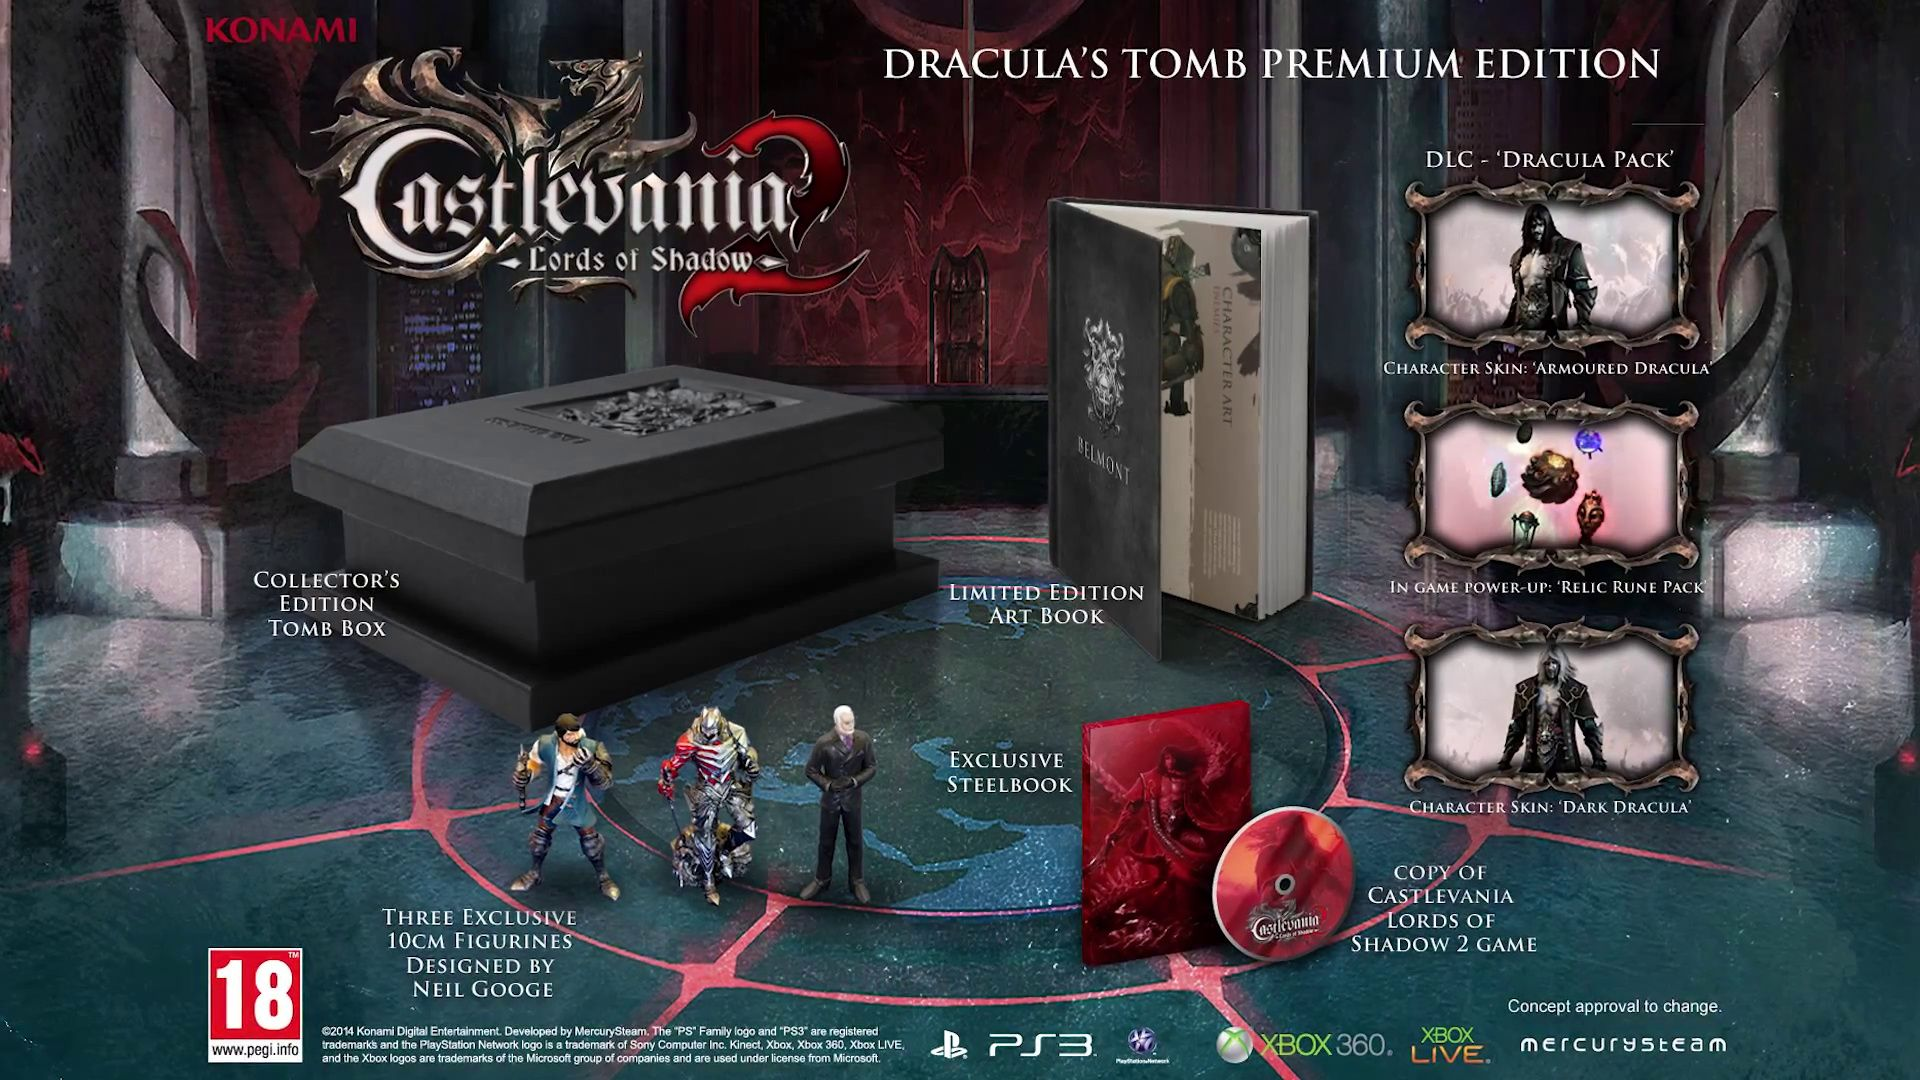 Castlevania: Lords of Shadow 2 - Dracula's Tomb Premium Edition (Xbox 360) - 6